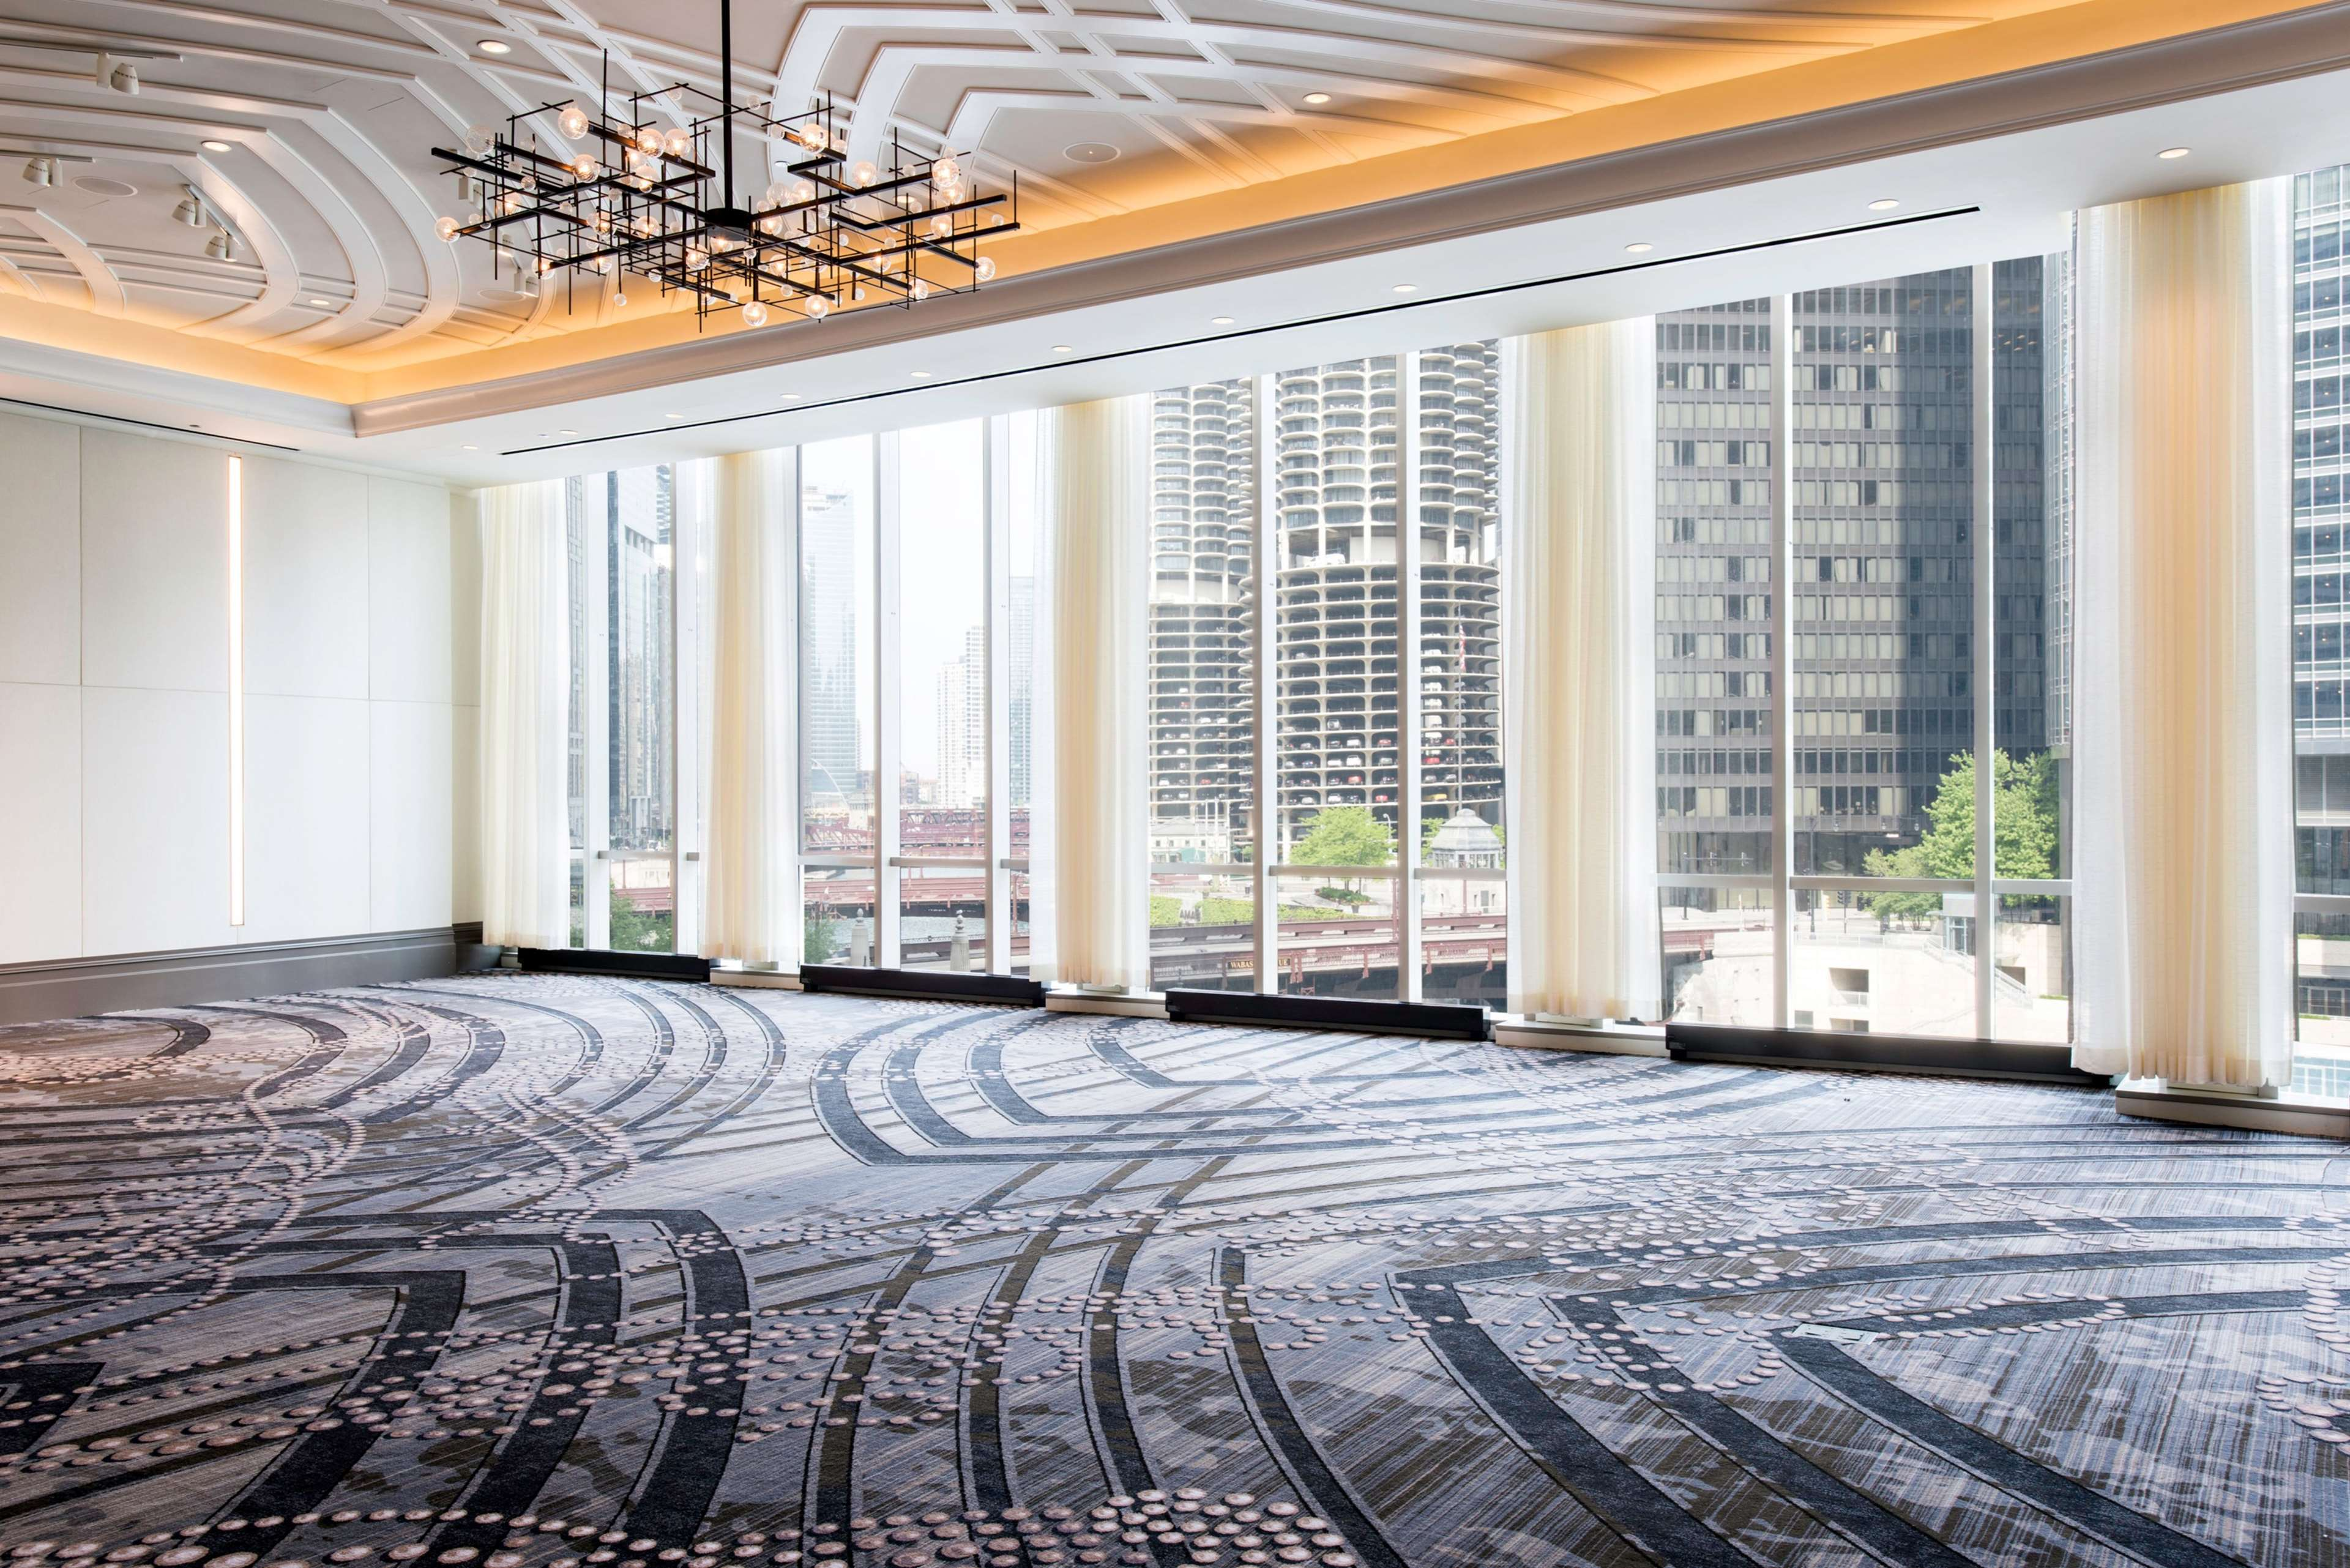 LondonHouse Chicago, Curio Collection by Hilton image 36